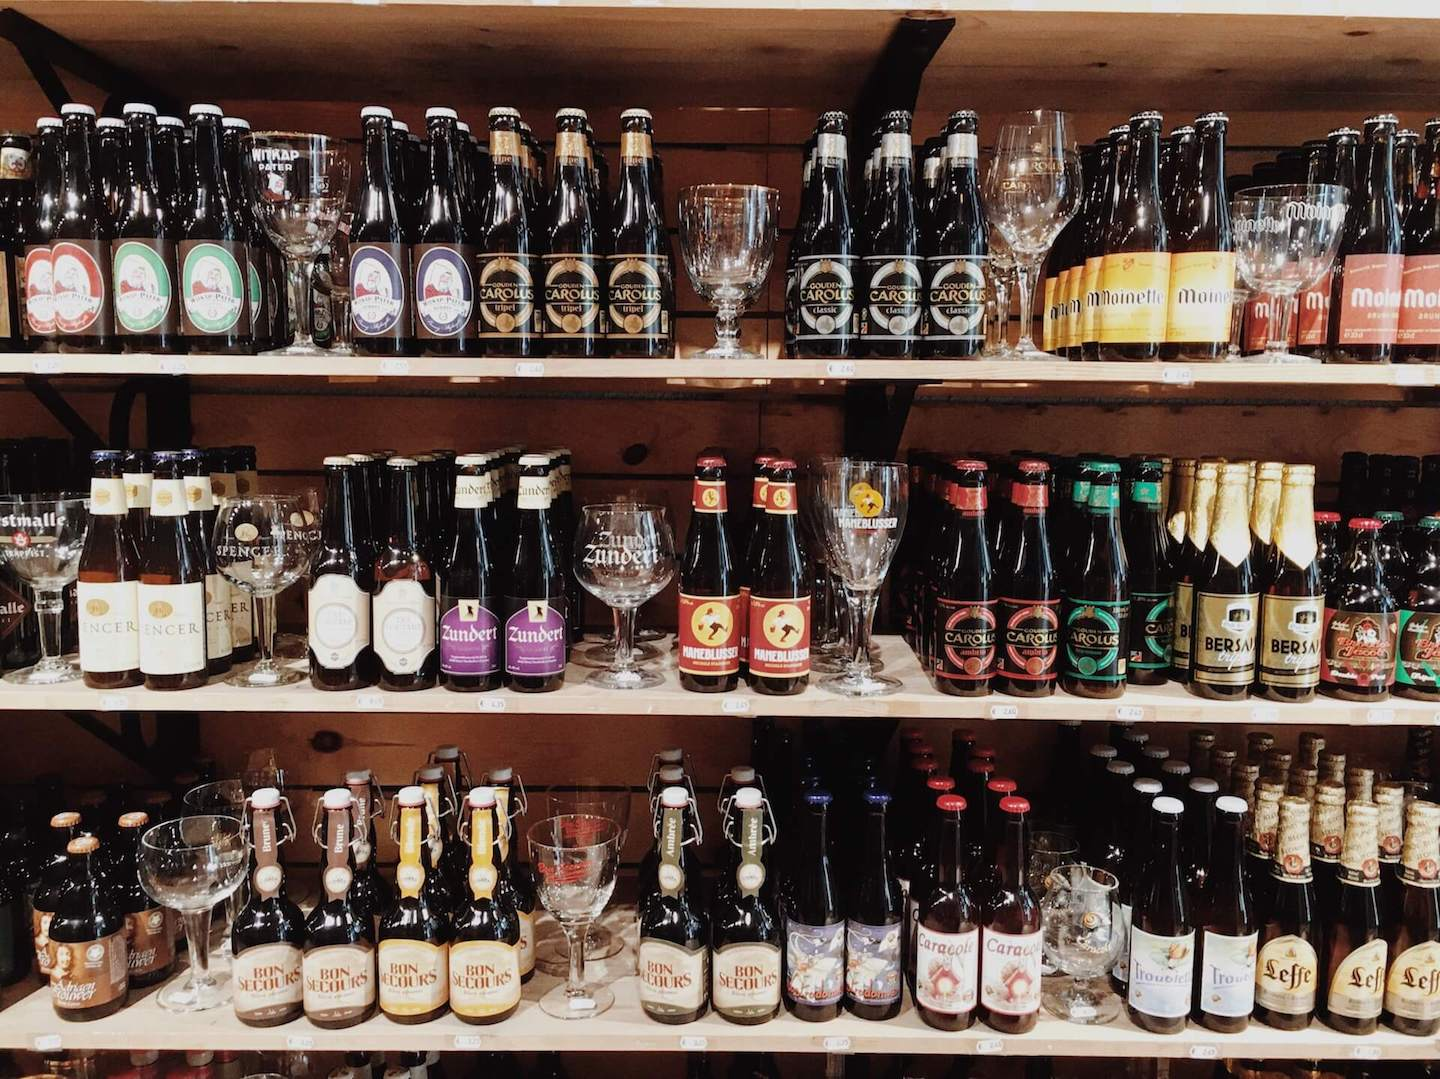 Belgium Beer Store in Bruges, Belgium | Moon & Honey Travel